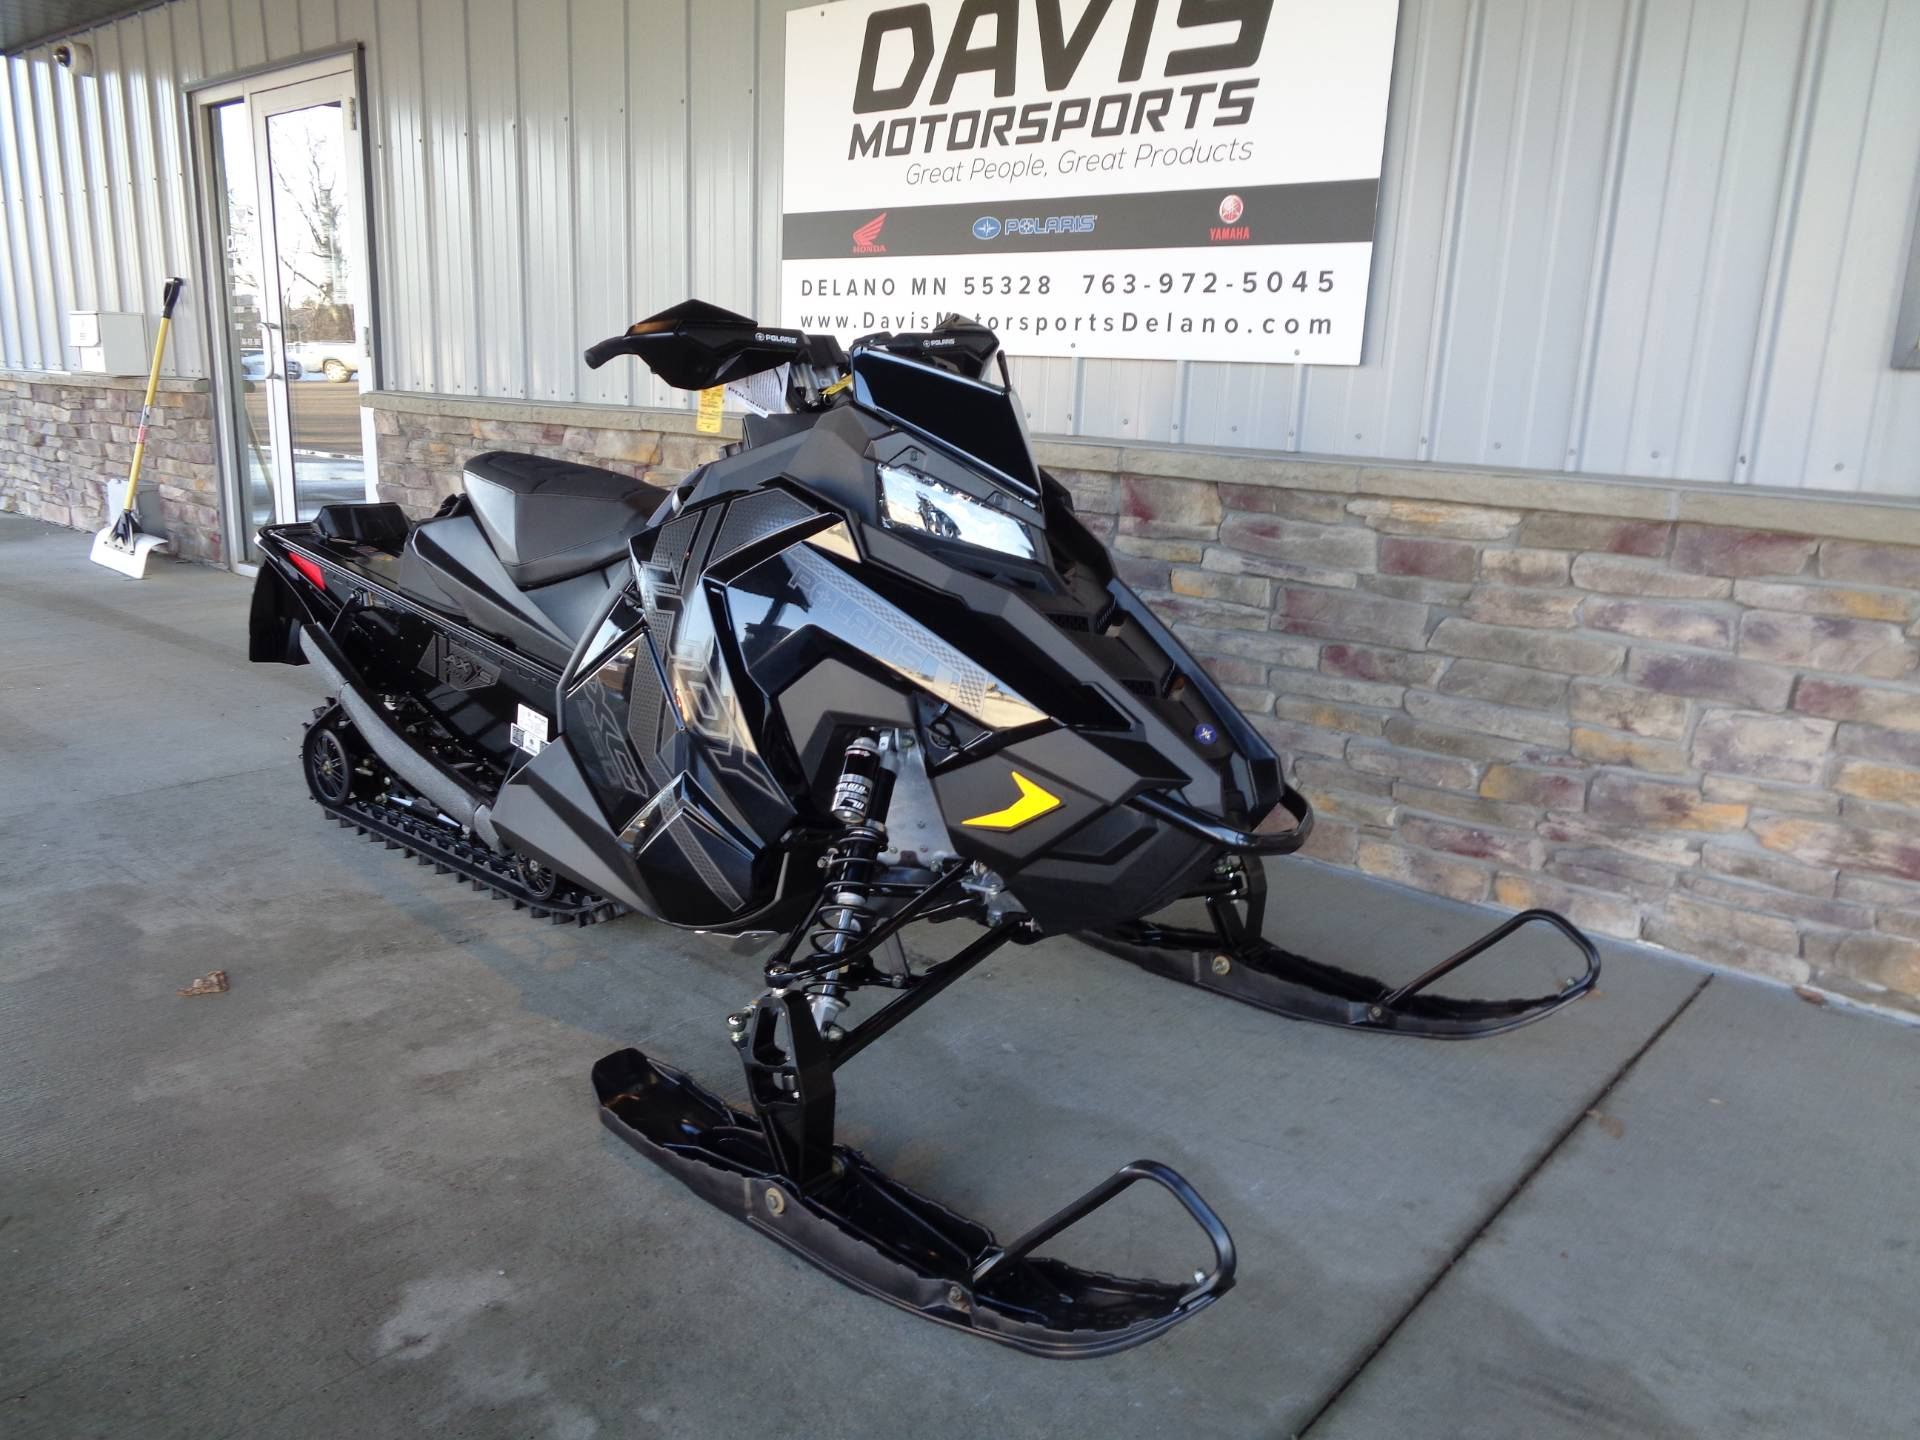 2021 Polaris 850 Indy XC 129 Factory Choice in Delano, Minnesota - Photo 3